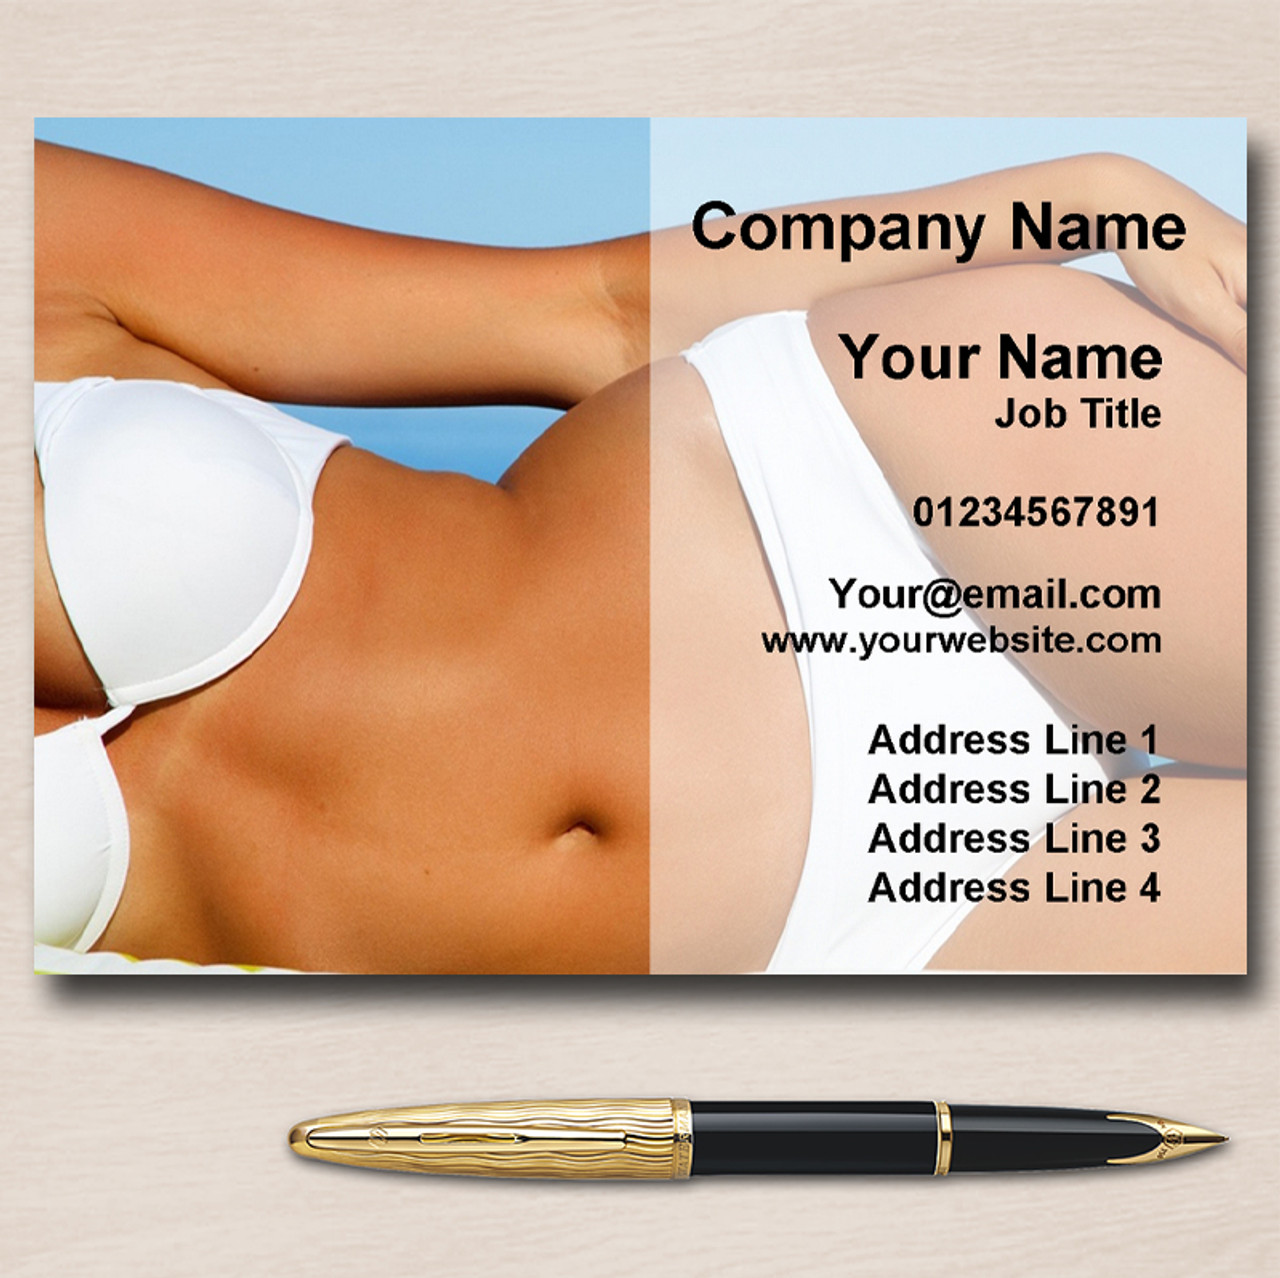 Tanning Spray Tan Sunbed Waxing Personalised Business Cards - The ...